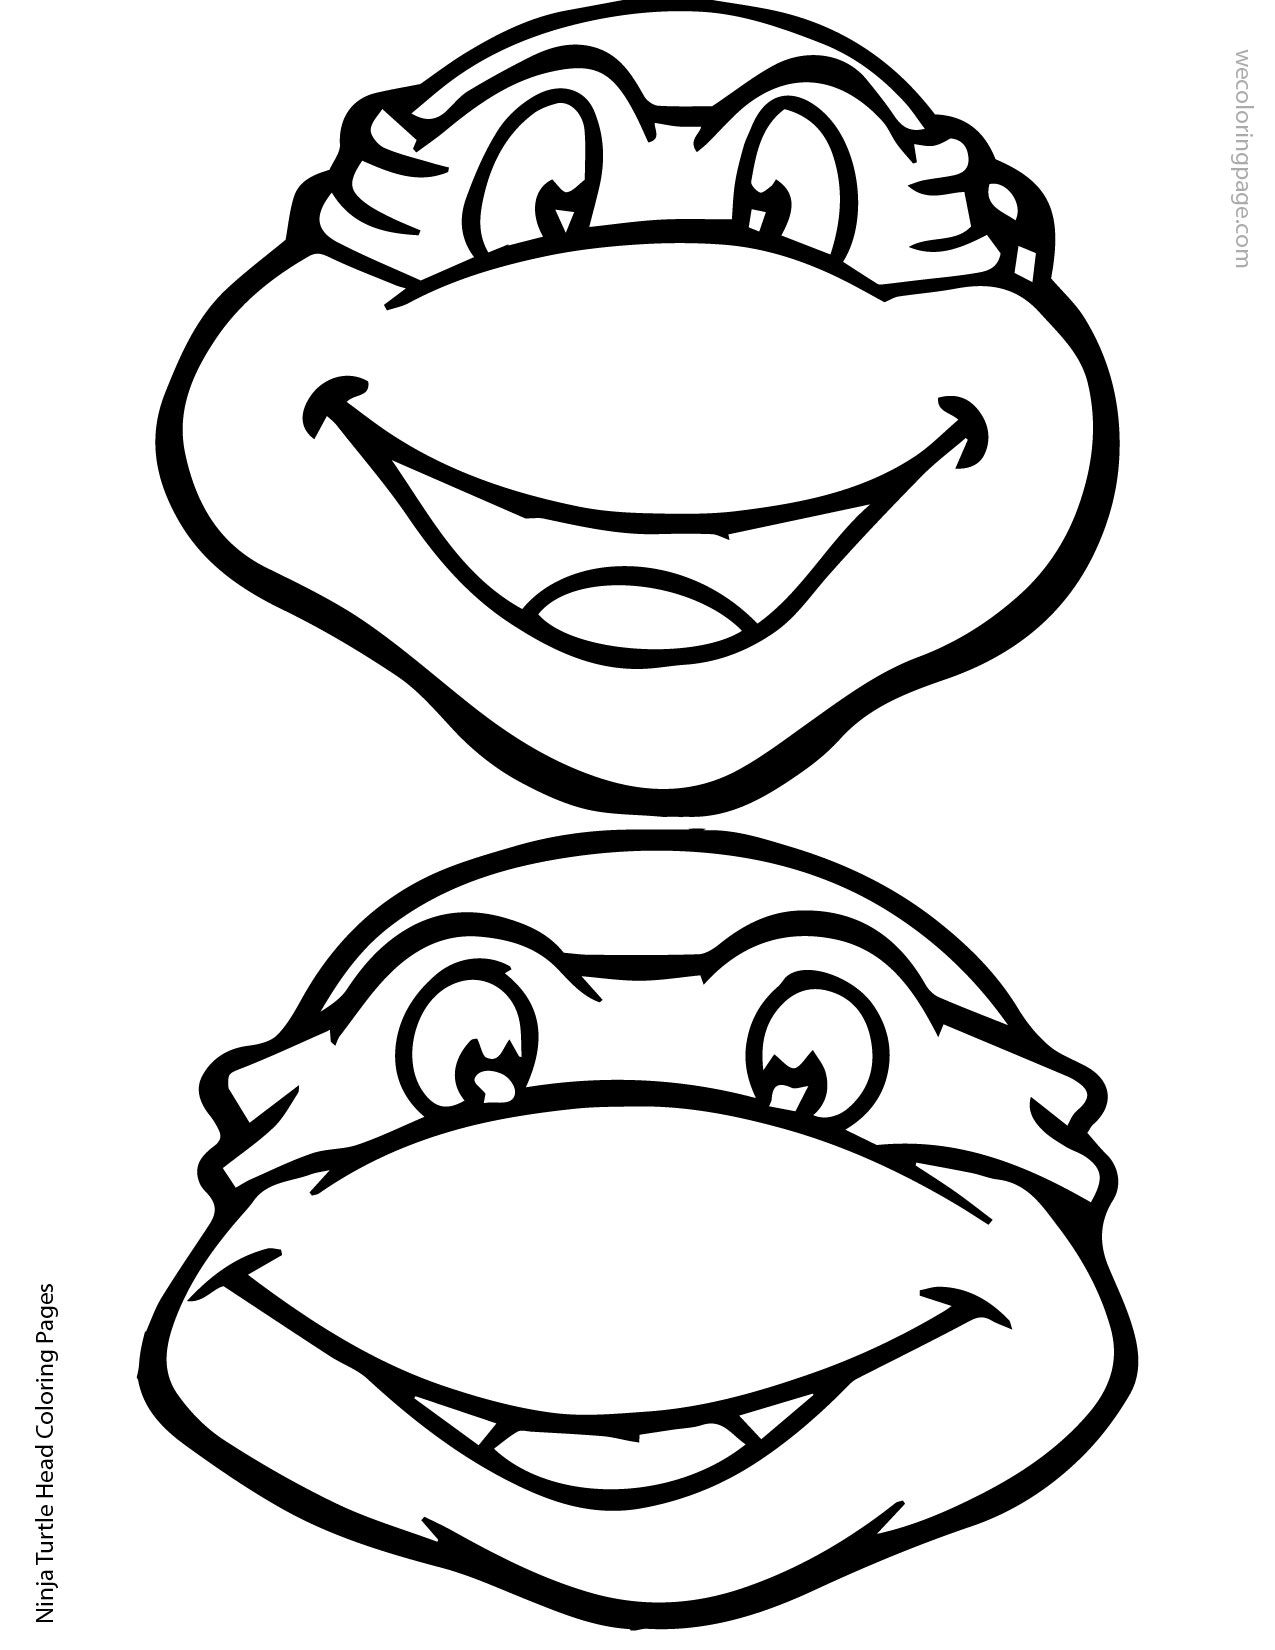 head coloring pages - photo#16